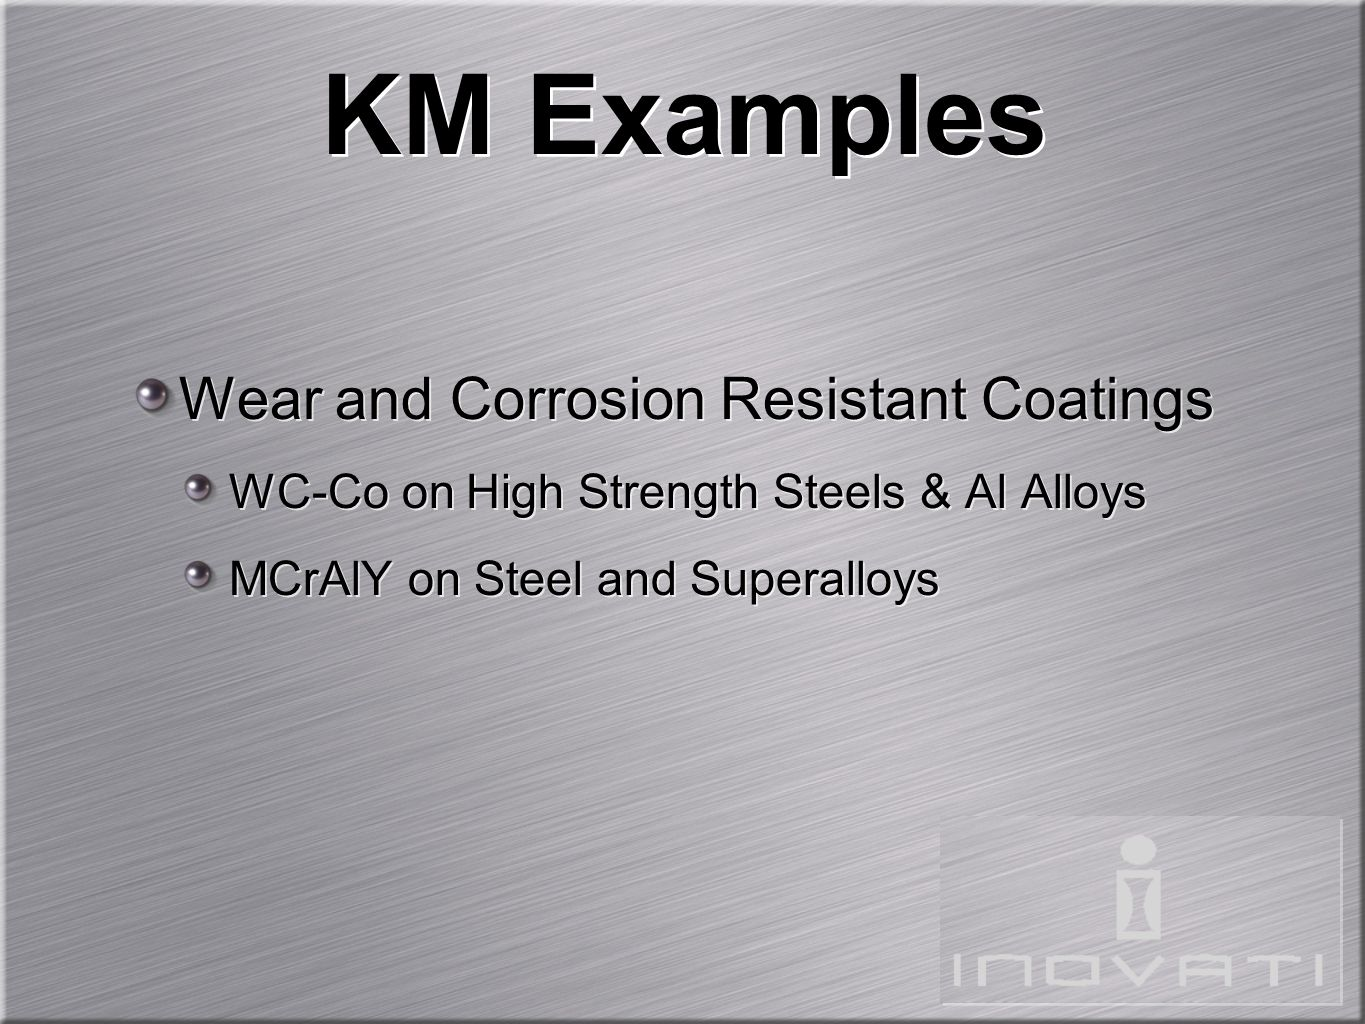 Wear and Corrosion Resistant Coatings WC-Co on High Strength Steels & Al Alloys MCrAlY on Steel and Superalloys Wear and Corrosion Resistant Coatings